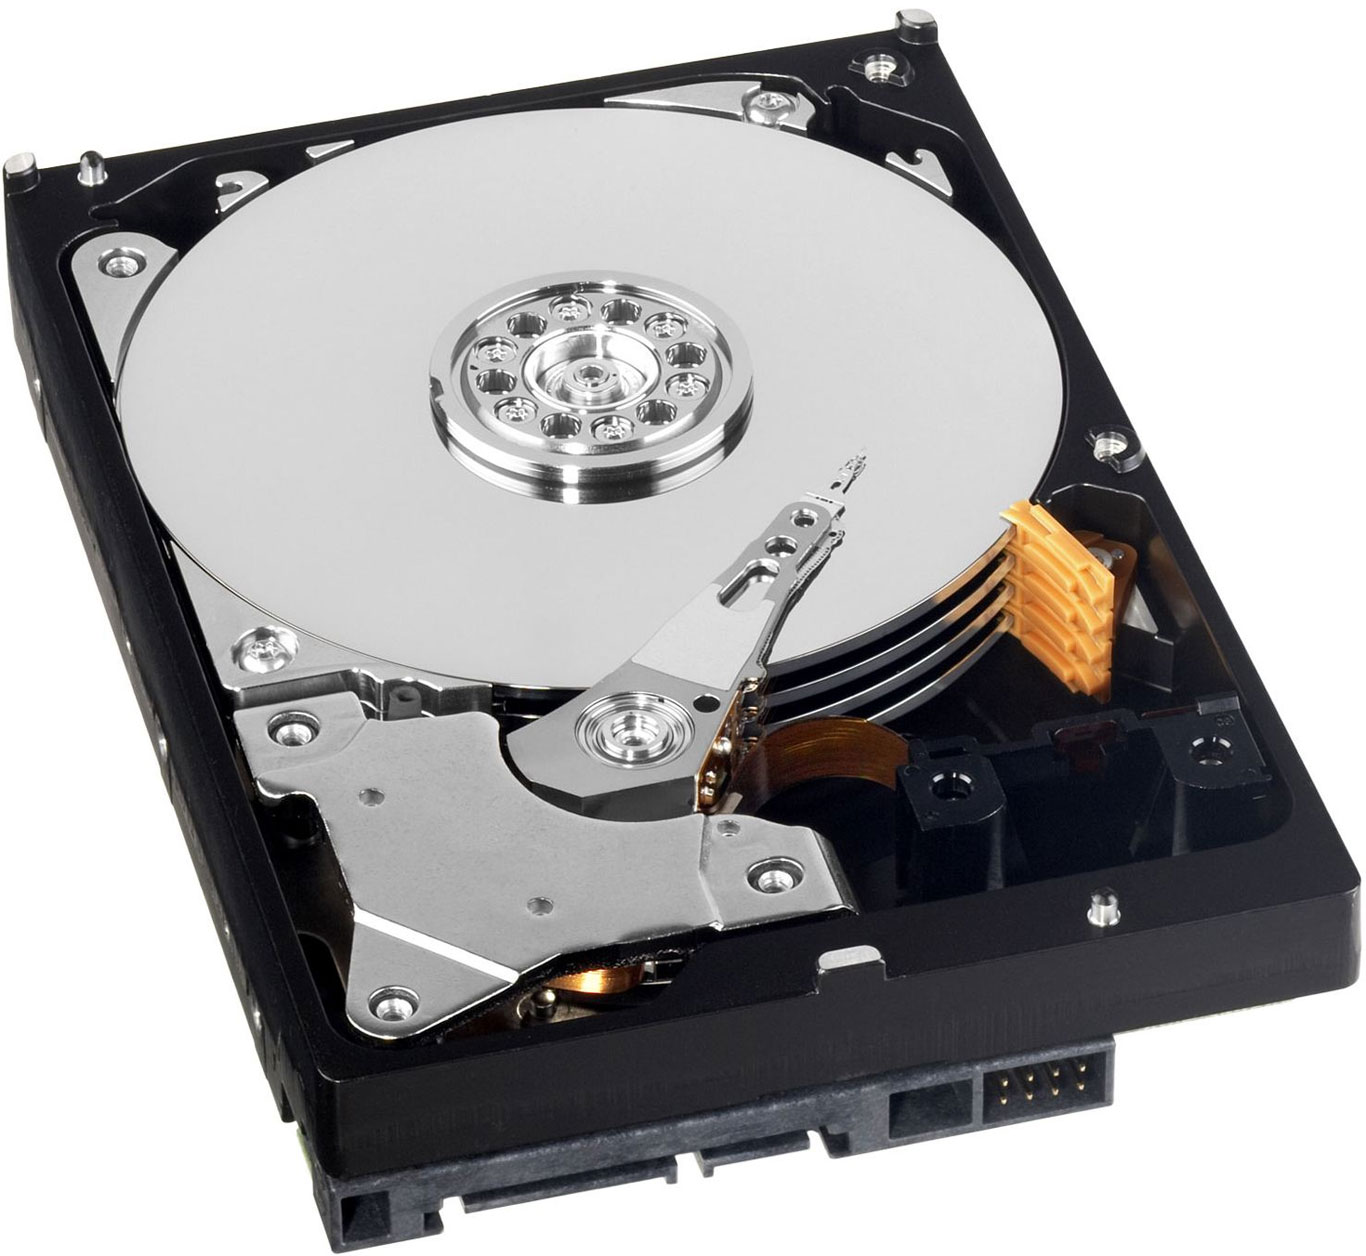 PC Sata 1TB HDD